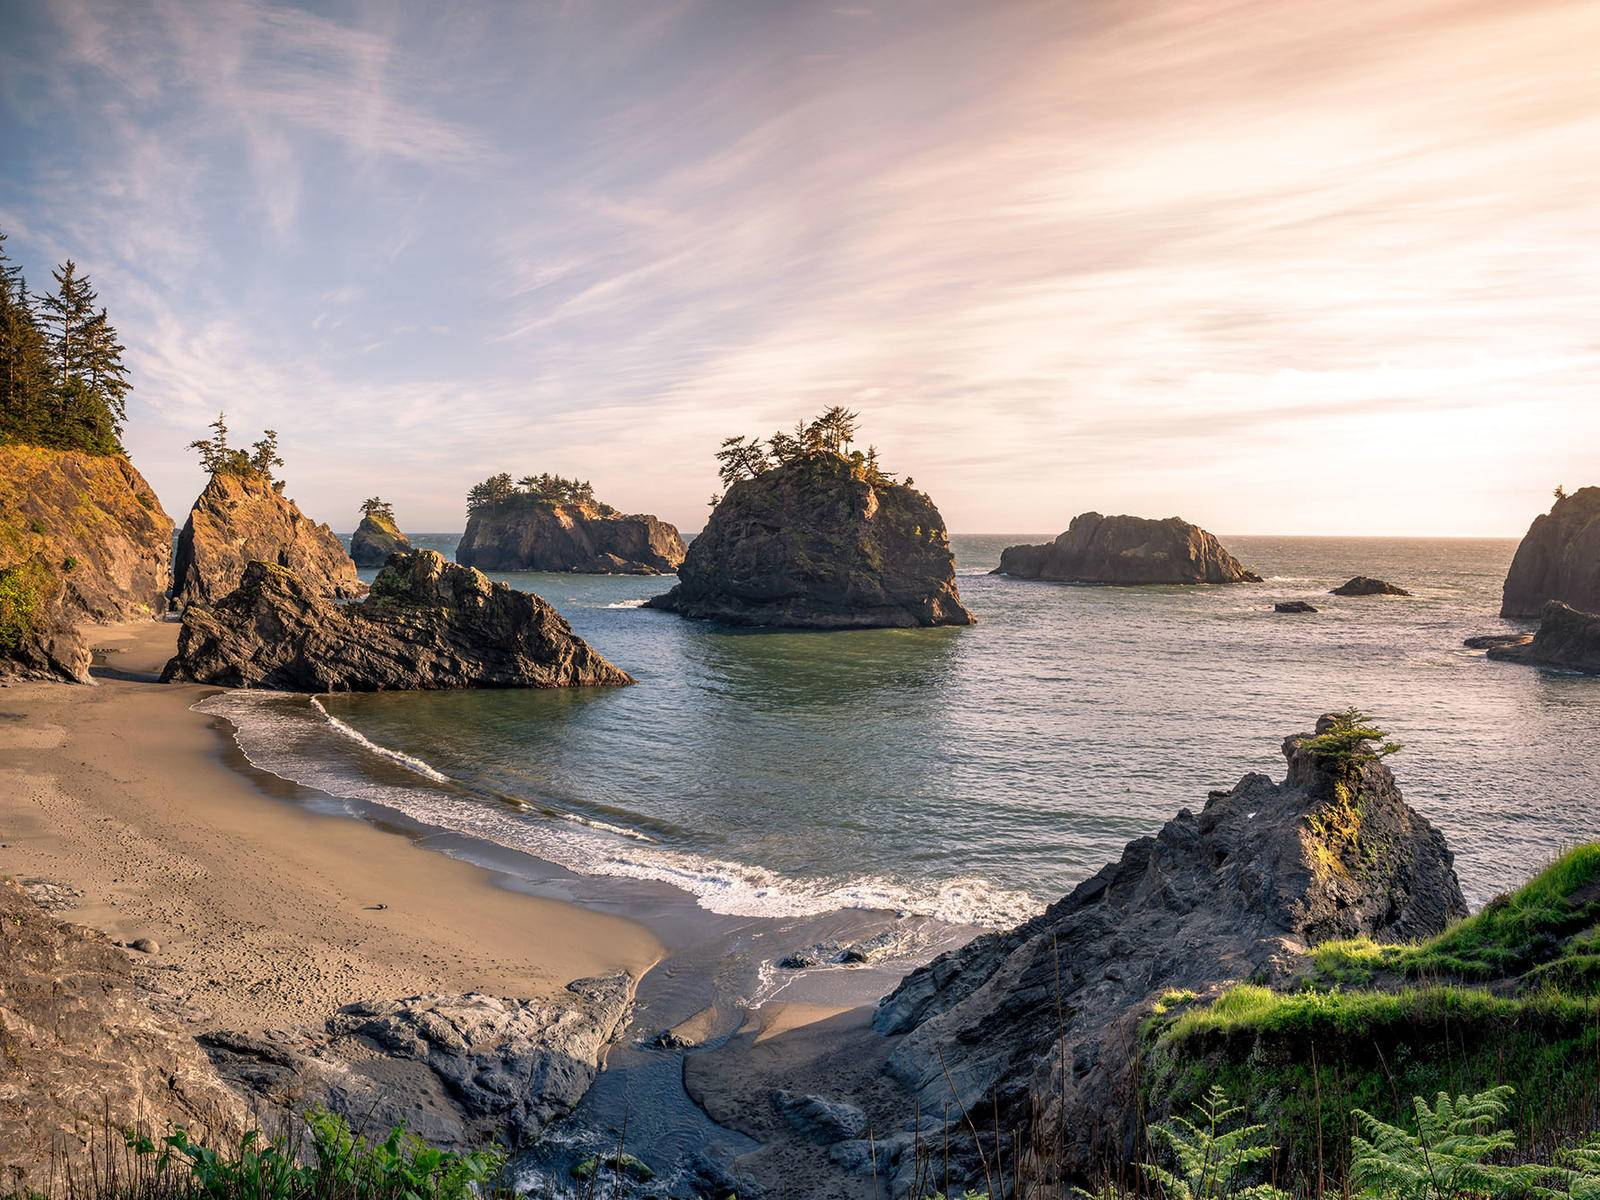 evening light, oregon coast, beach with sea stacks